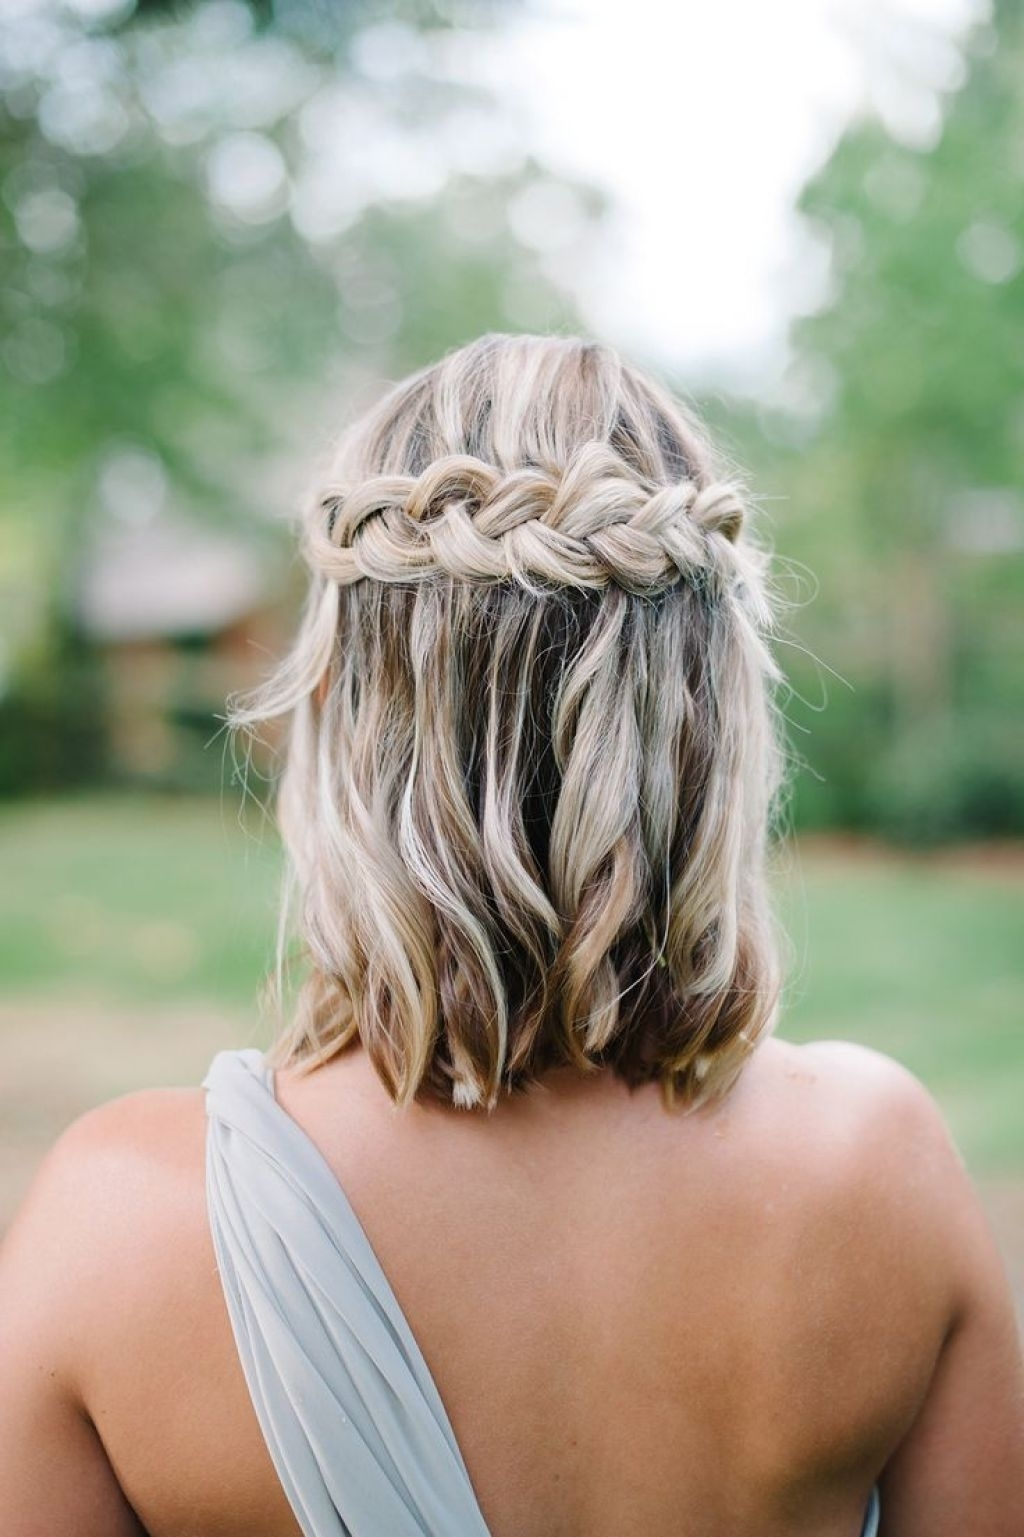 √ 24+ Lovely Bridal Hairstyles For Short Hair: Bridesmaid Inside Well Liked Wedding Hairstyles For Short Hair Bridesmaid (View 2 of 15)